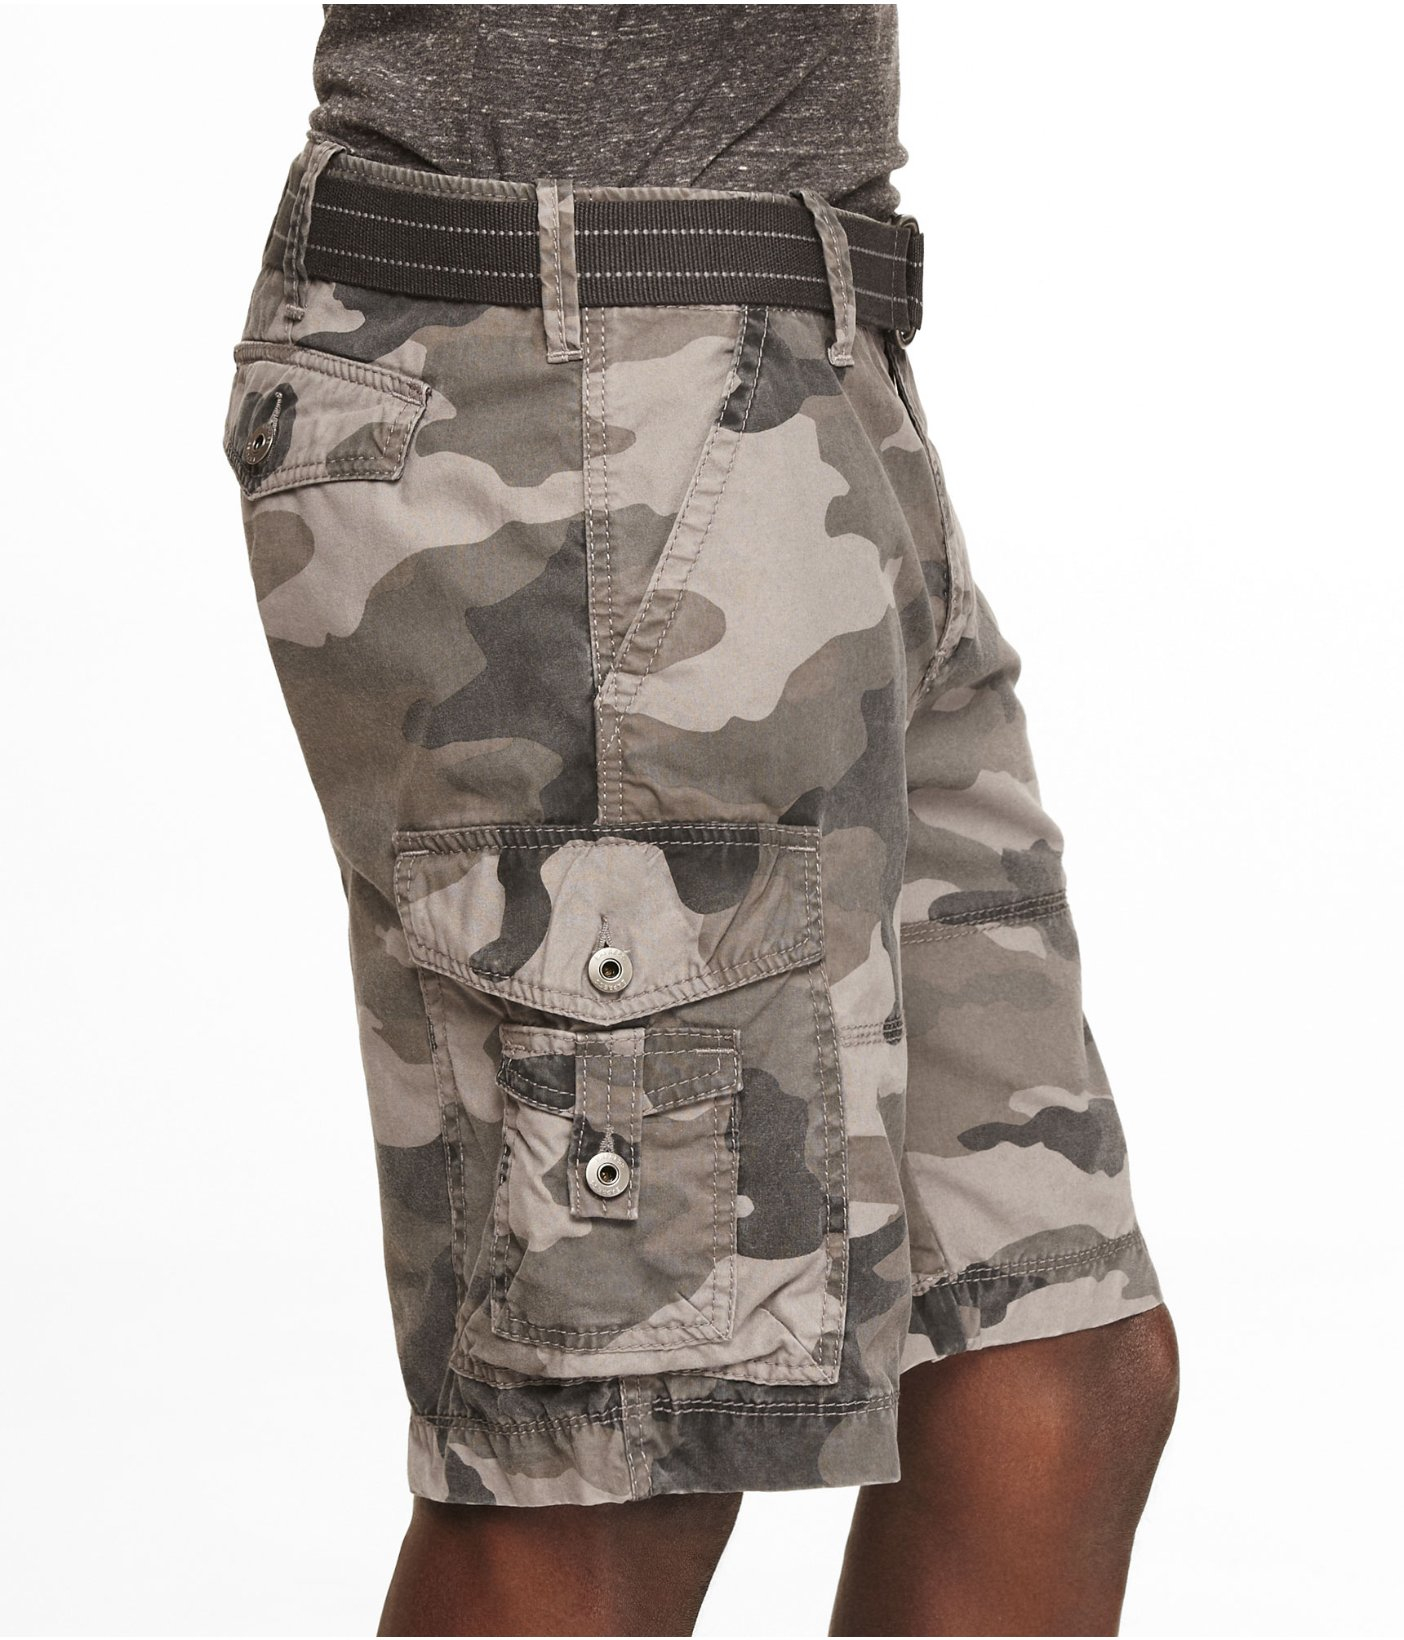 8c60782acd Express 10 Inch Belted Camouflage Cargo Shorts in Gray for Men - Lyst